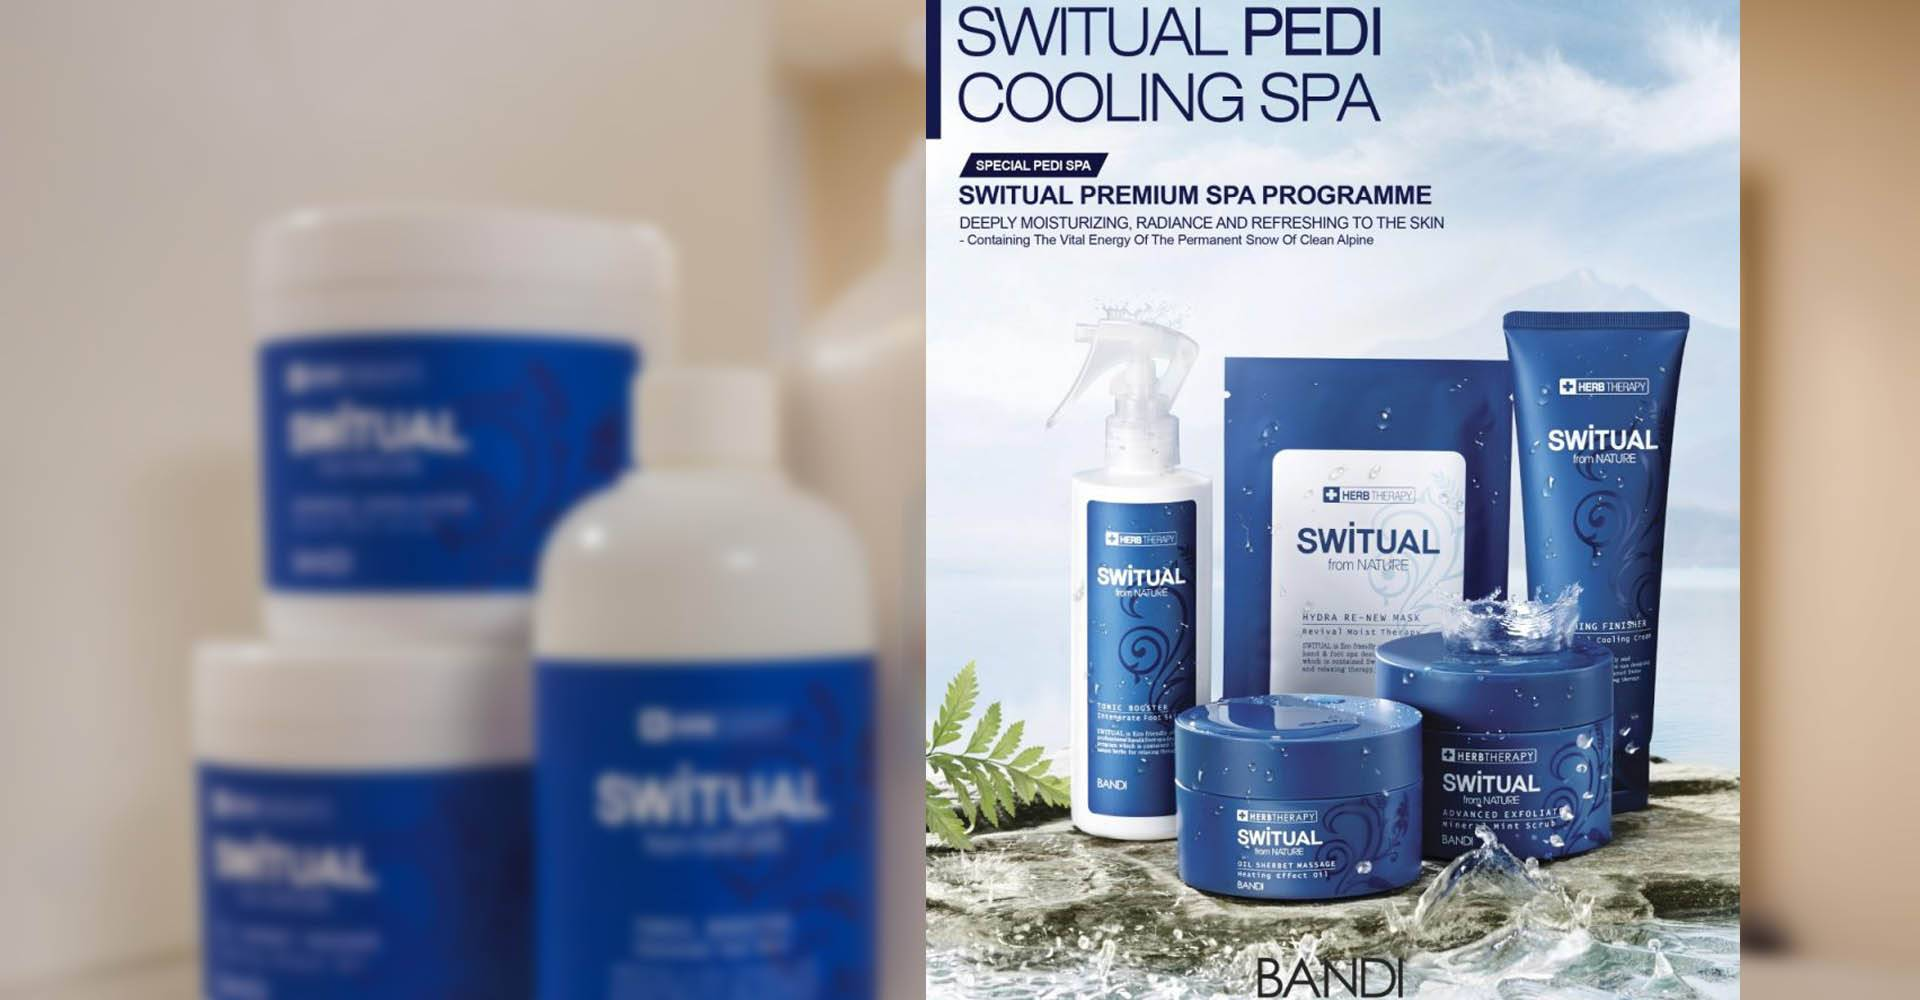 Switual Pedi Spa